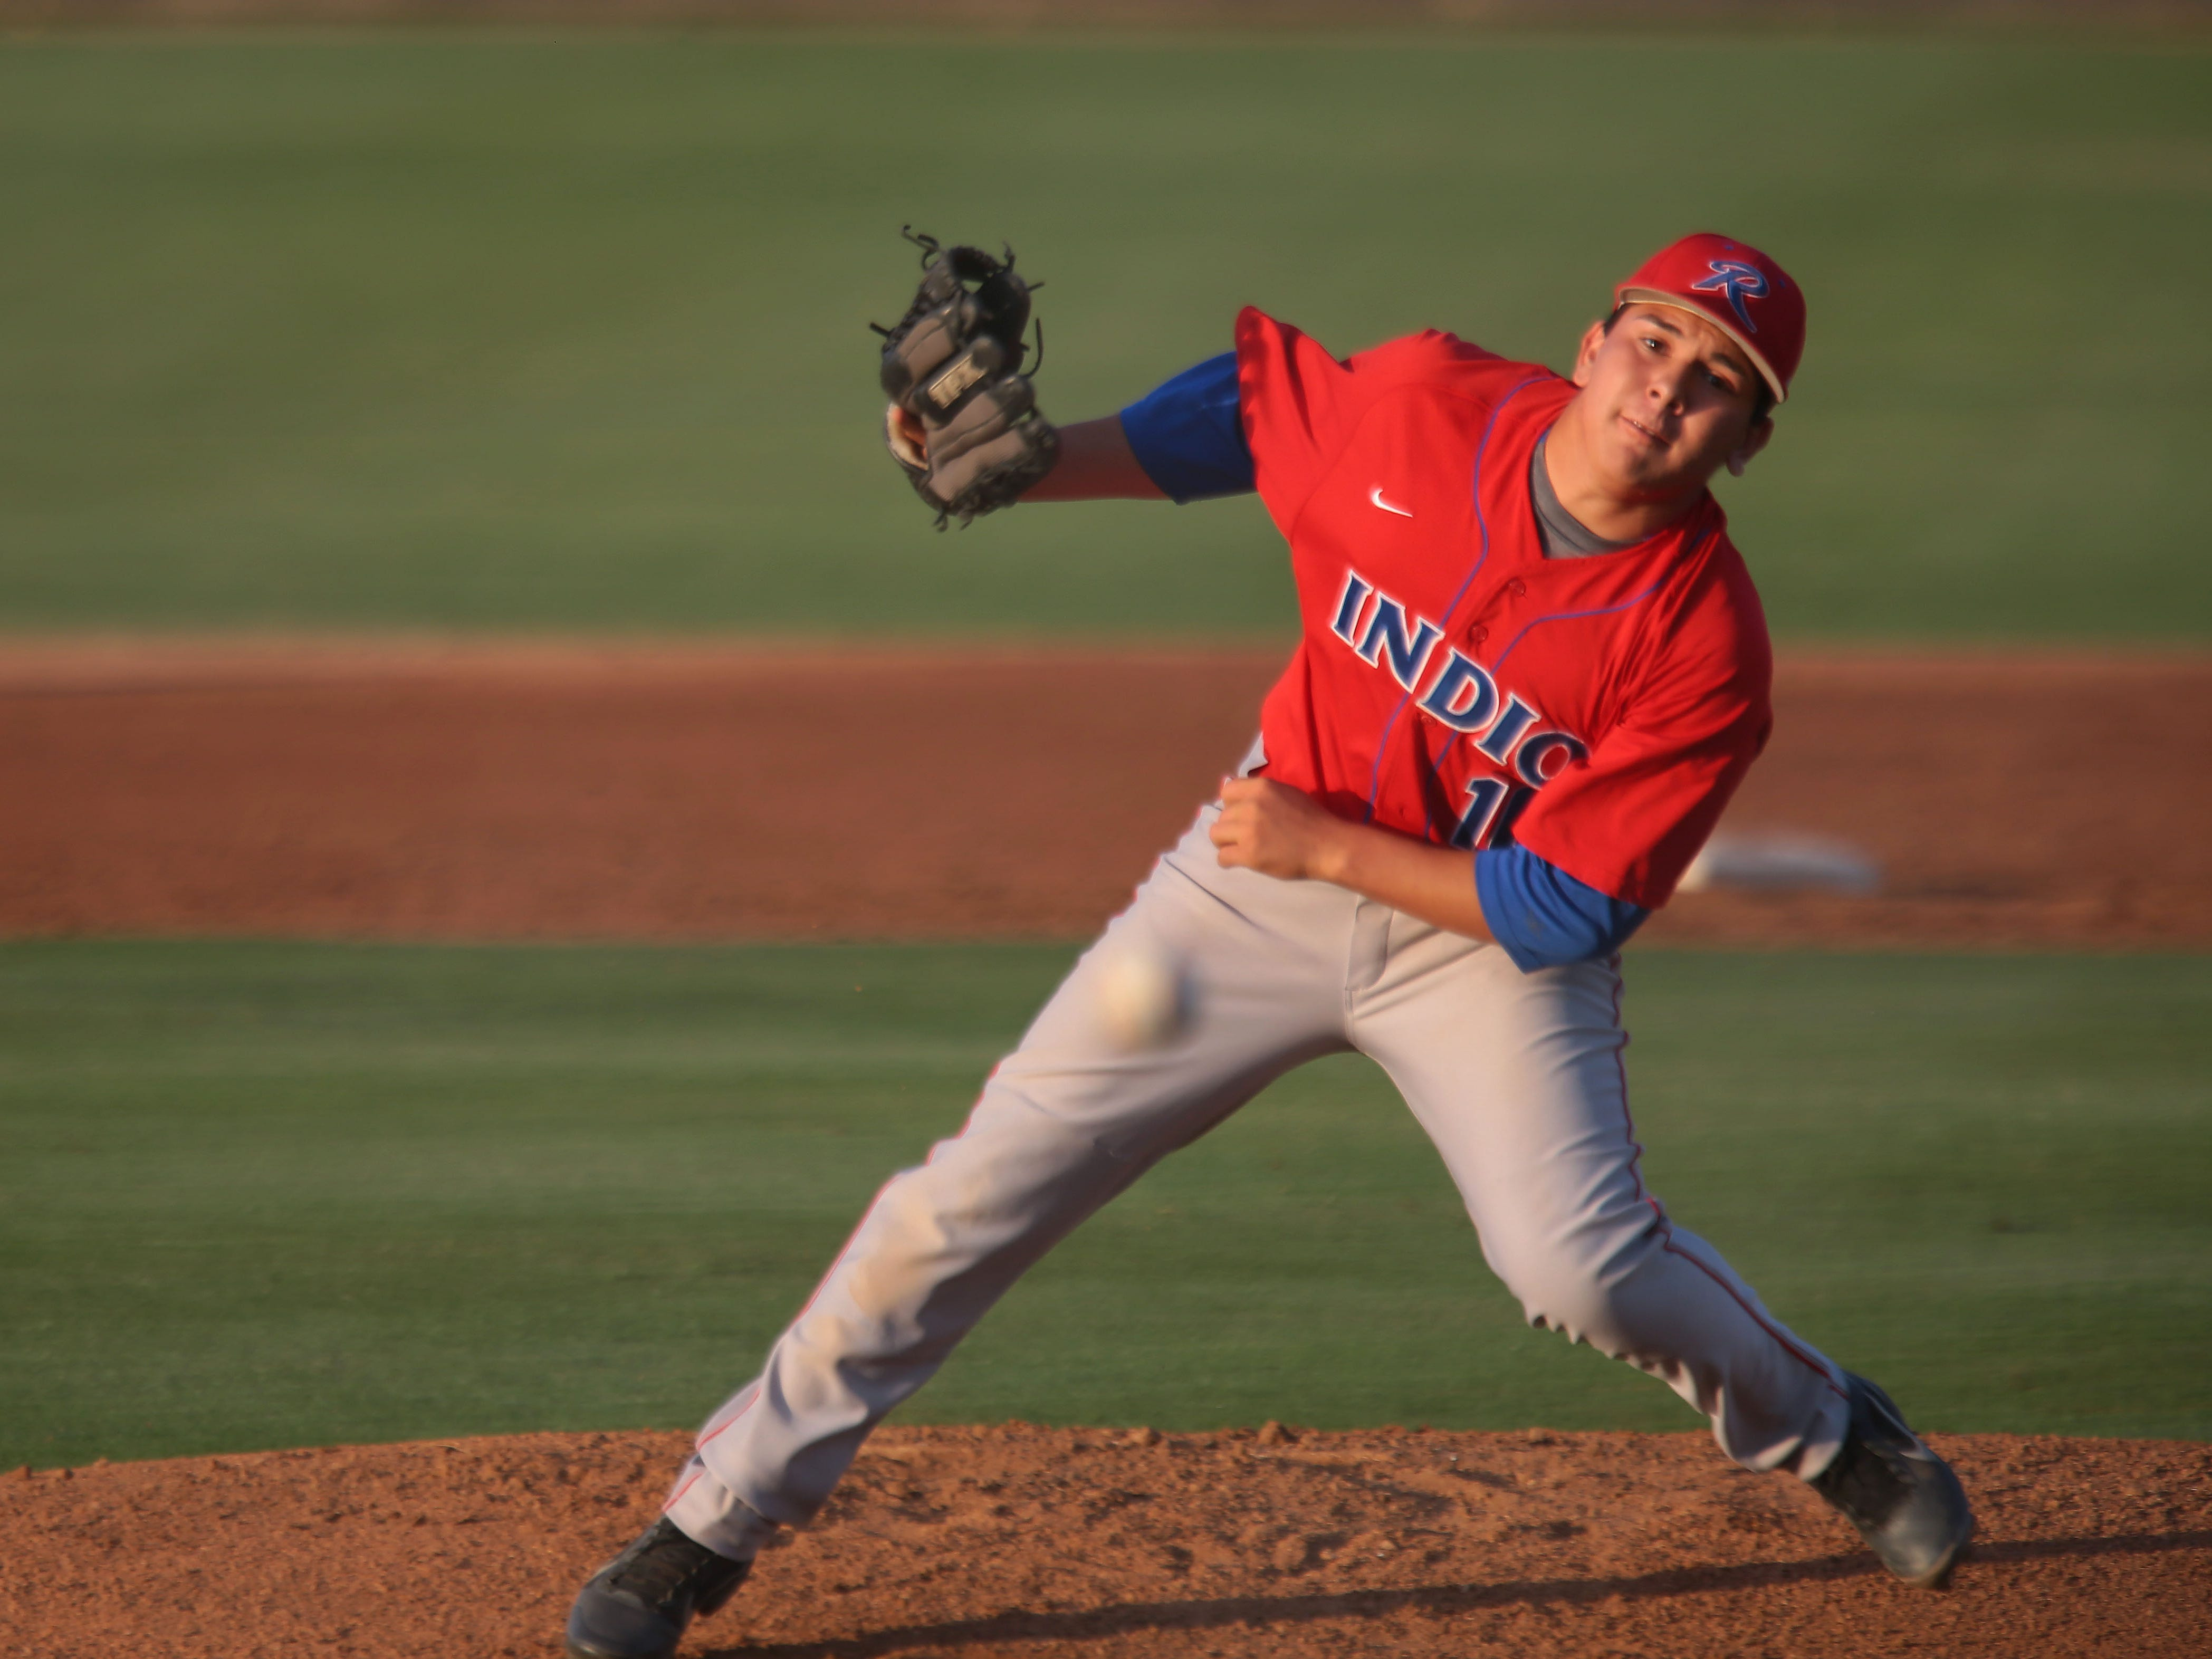 Indio's Juan Siqueiros pitches against Palm Desert on Tuesday in Palm Desert.